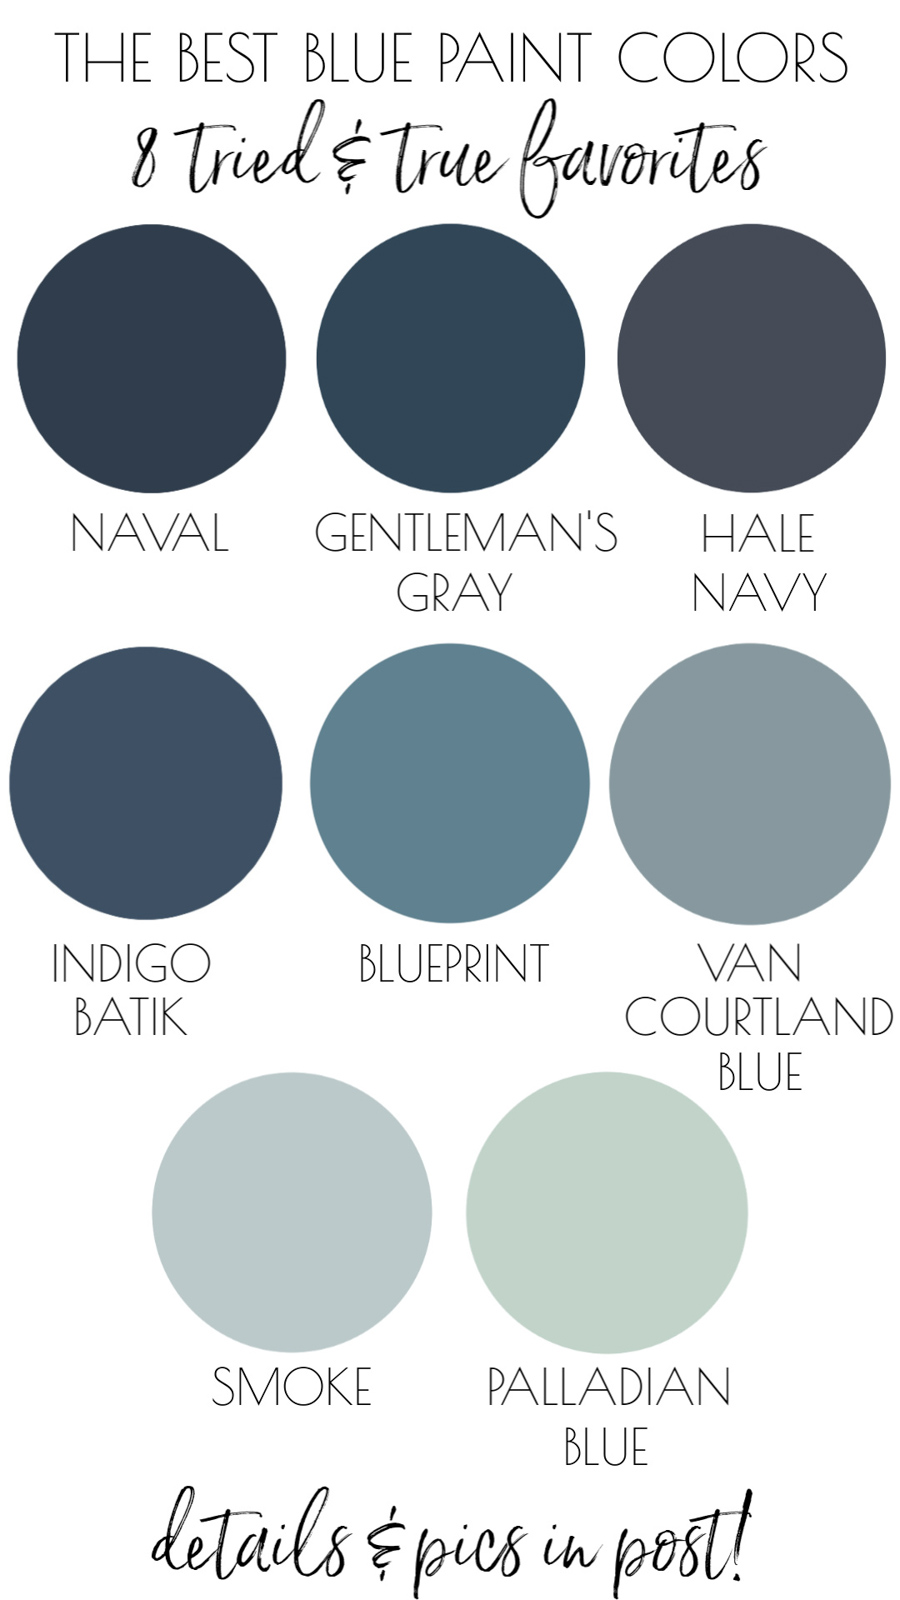 Awesome post on the best blue paint colors with real-life examples!